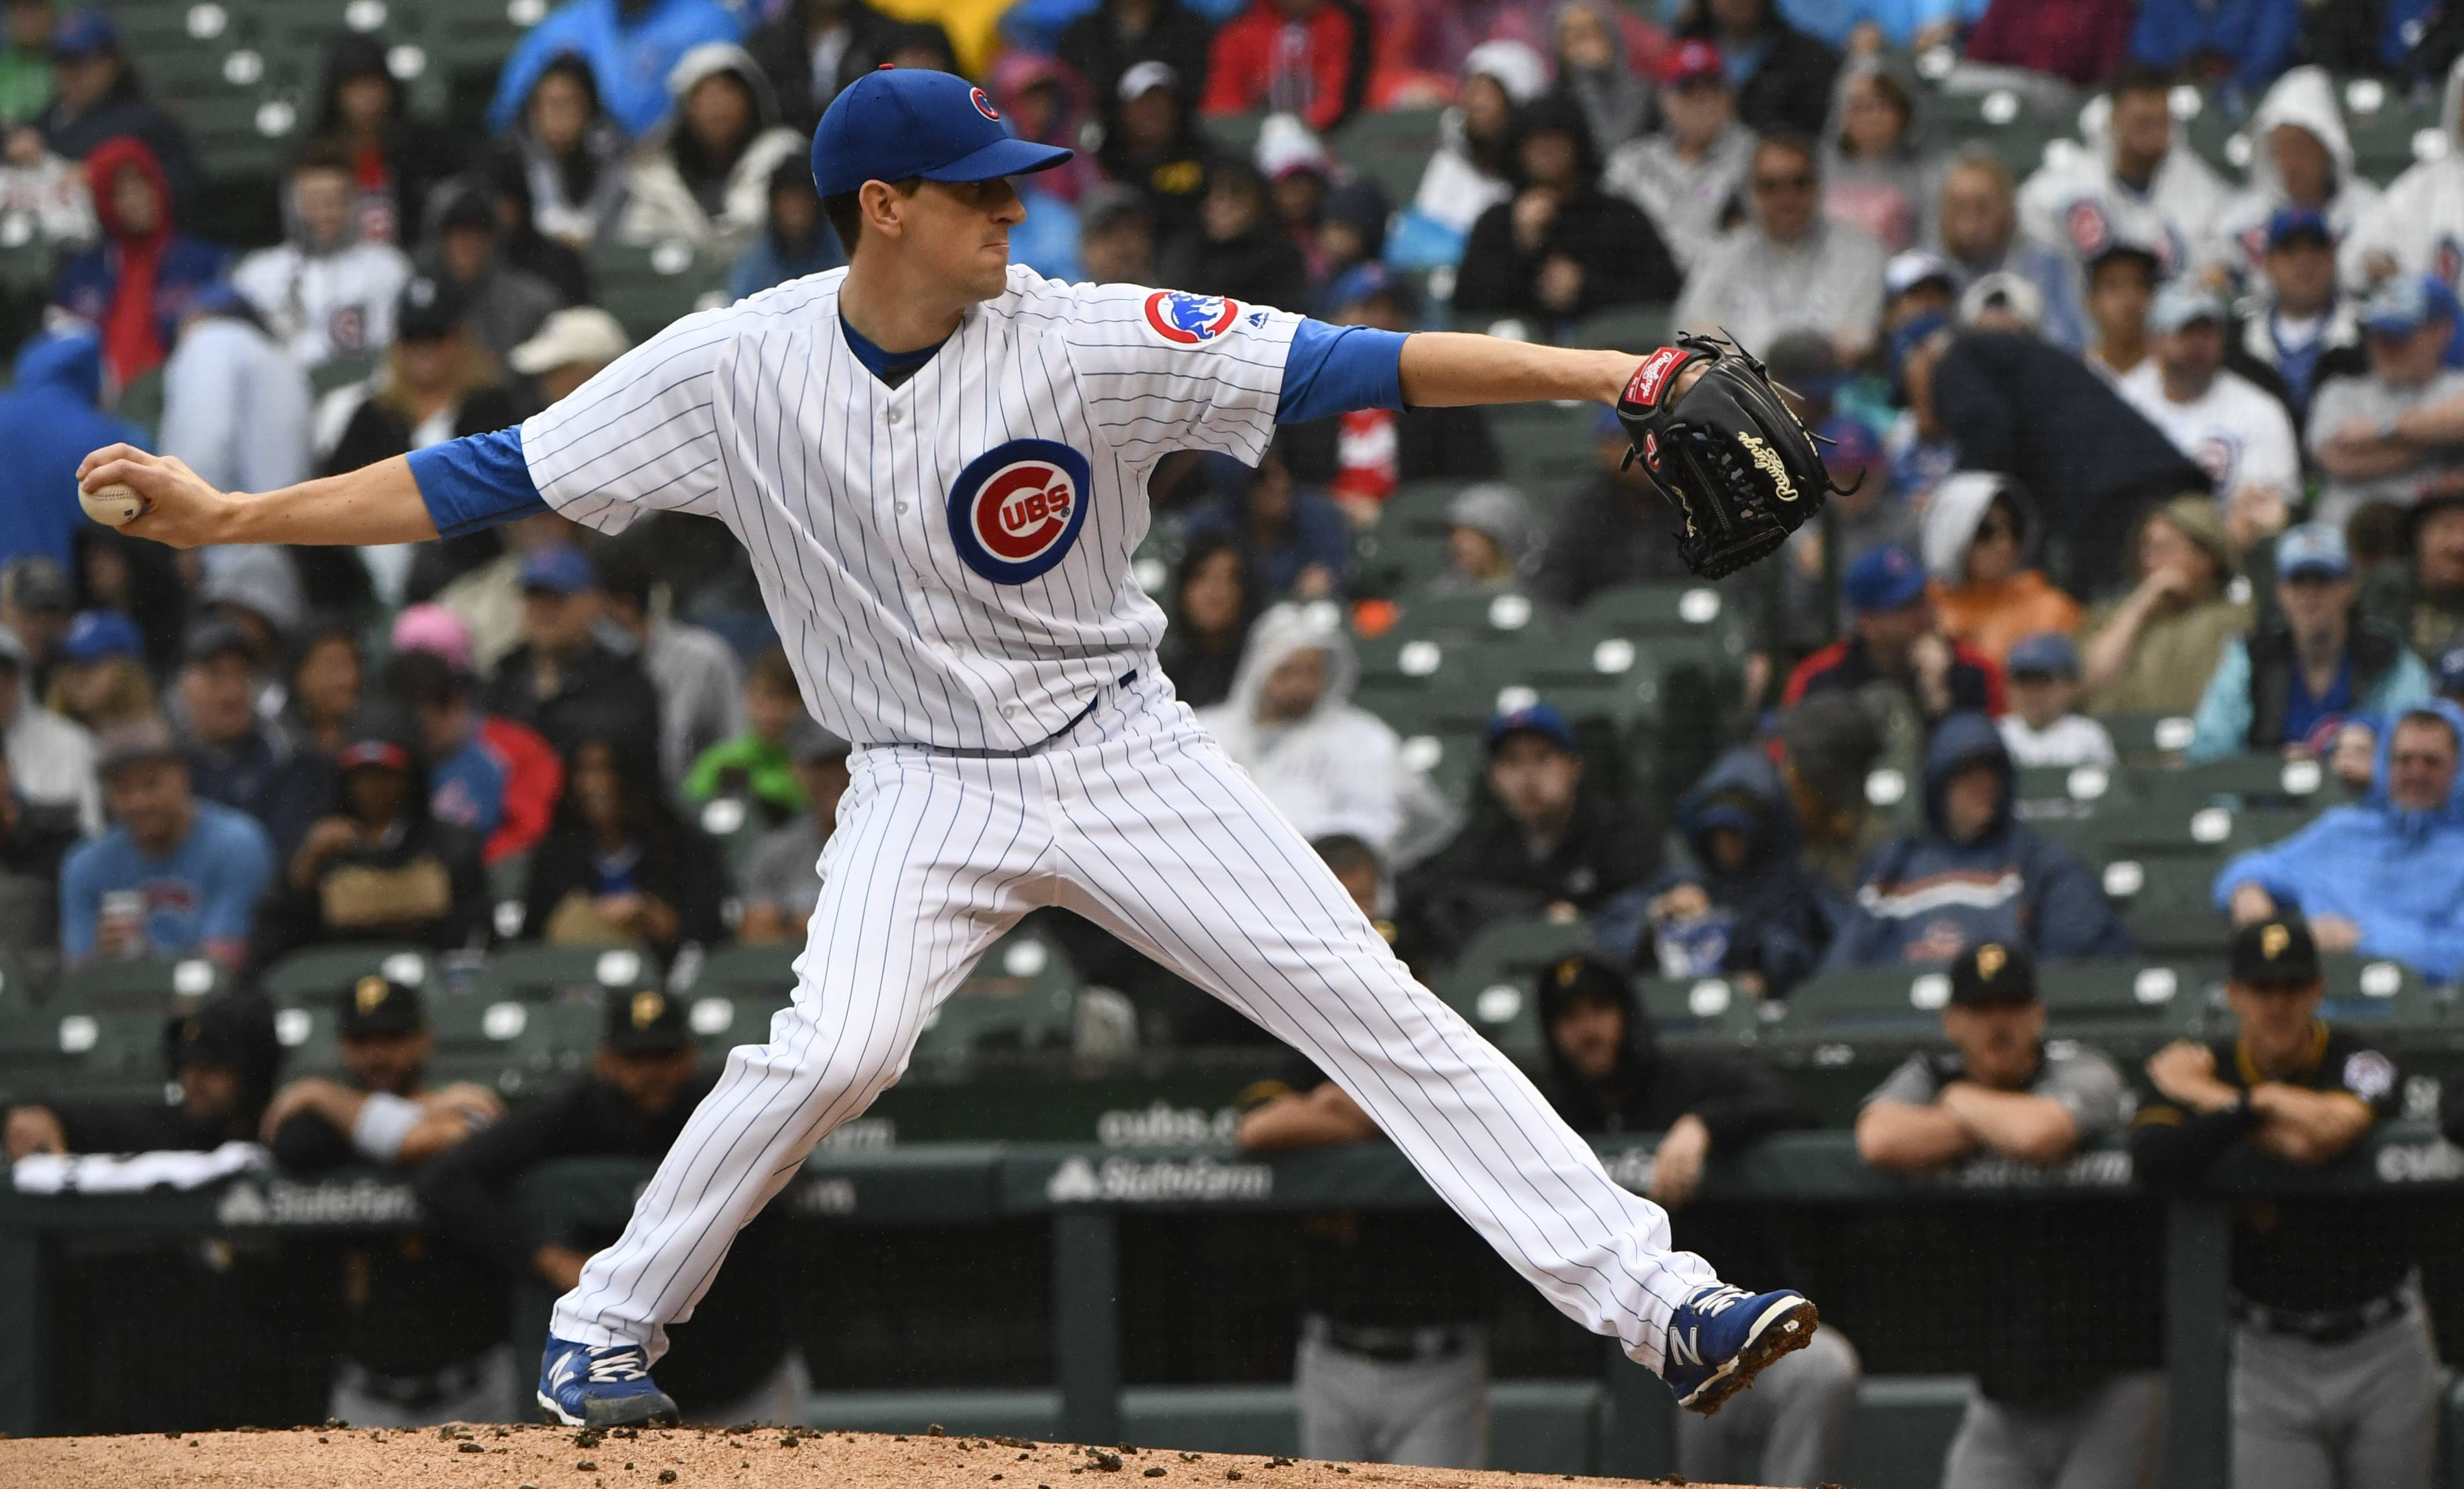 Chicago Cubs starting pitcher Kyle Hendricks delivers during the first inning of a baseball game against the Pittsburgh Pirates, Sunday, June 10, 2018, in Chicago.